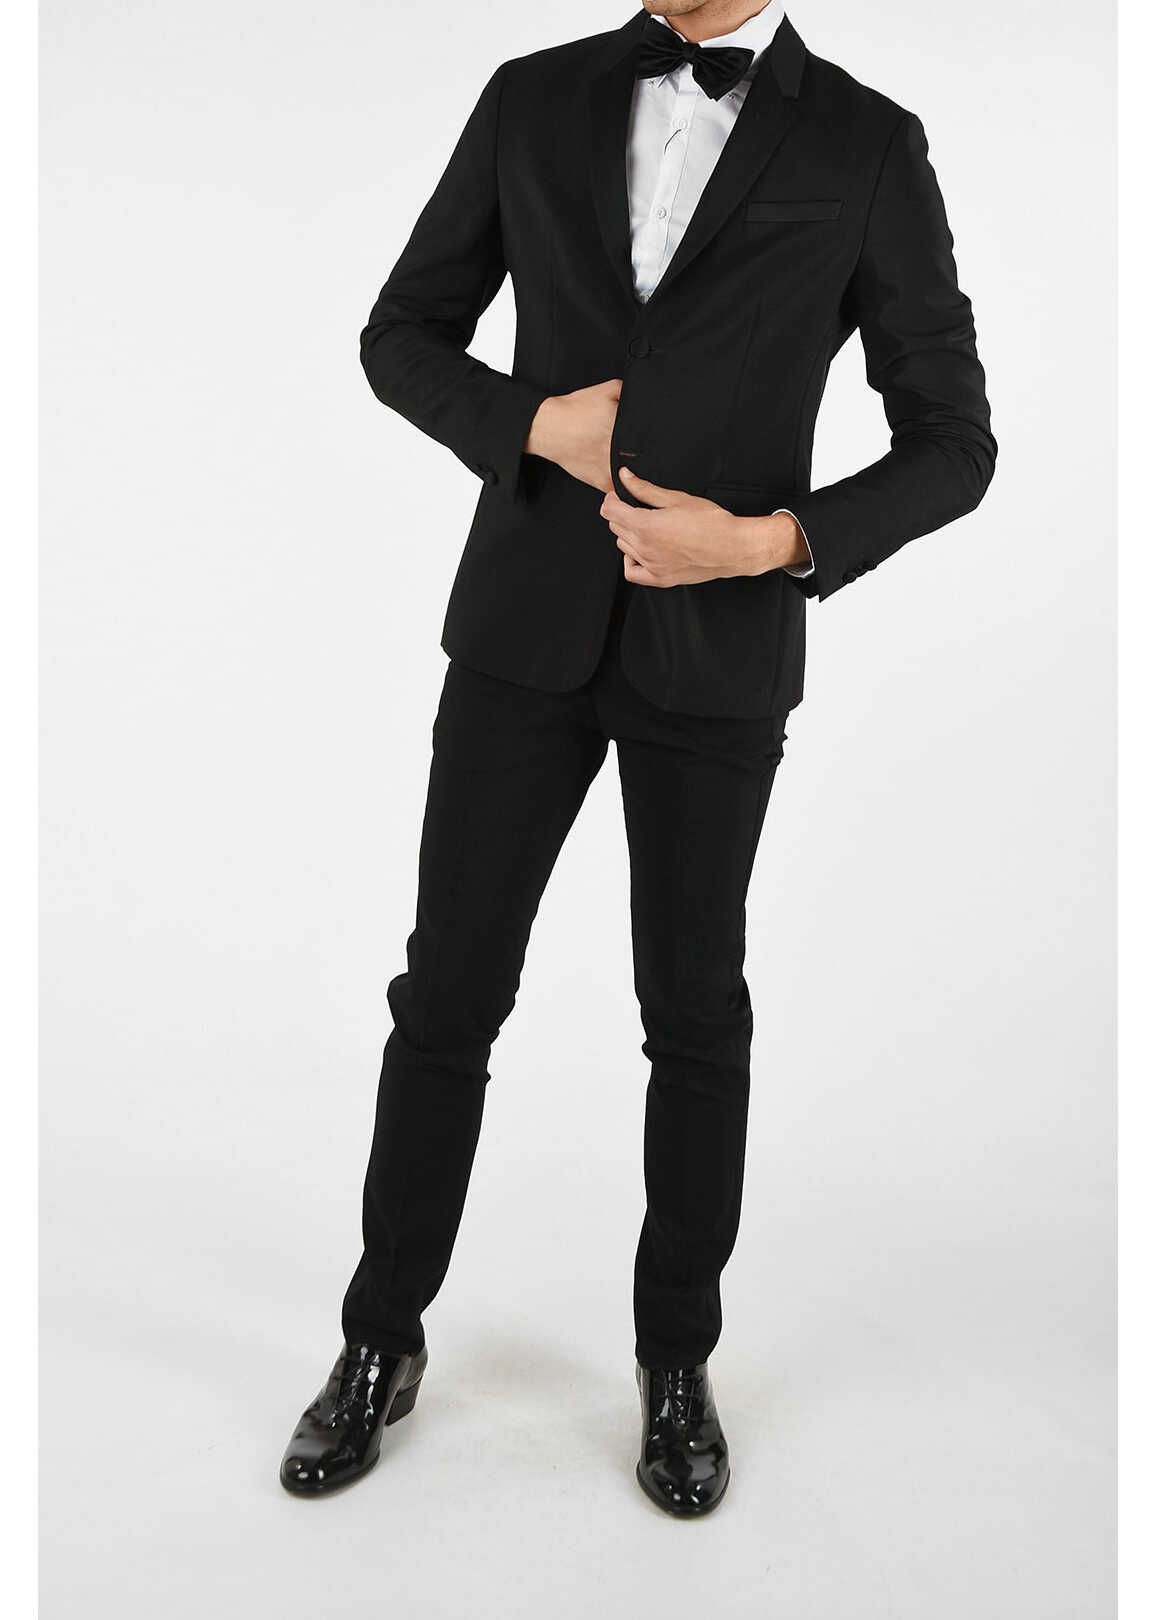 Armani EMPORIO Virgin Wool and Mohair Single Breasted Suit BLACK imagine